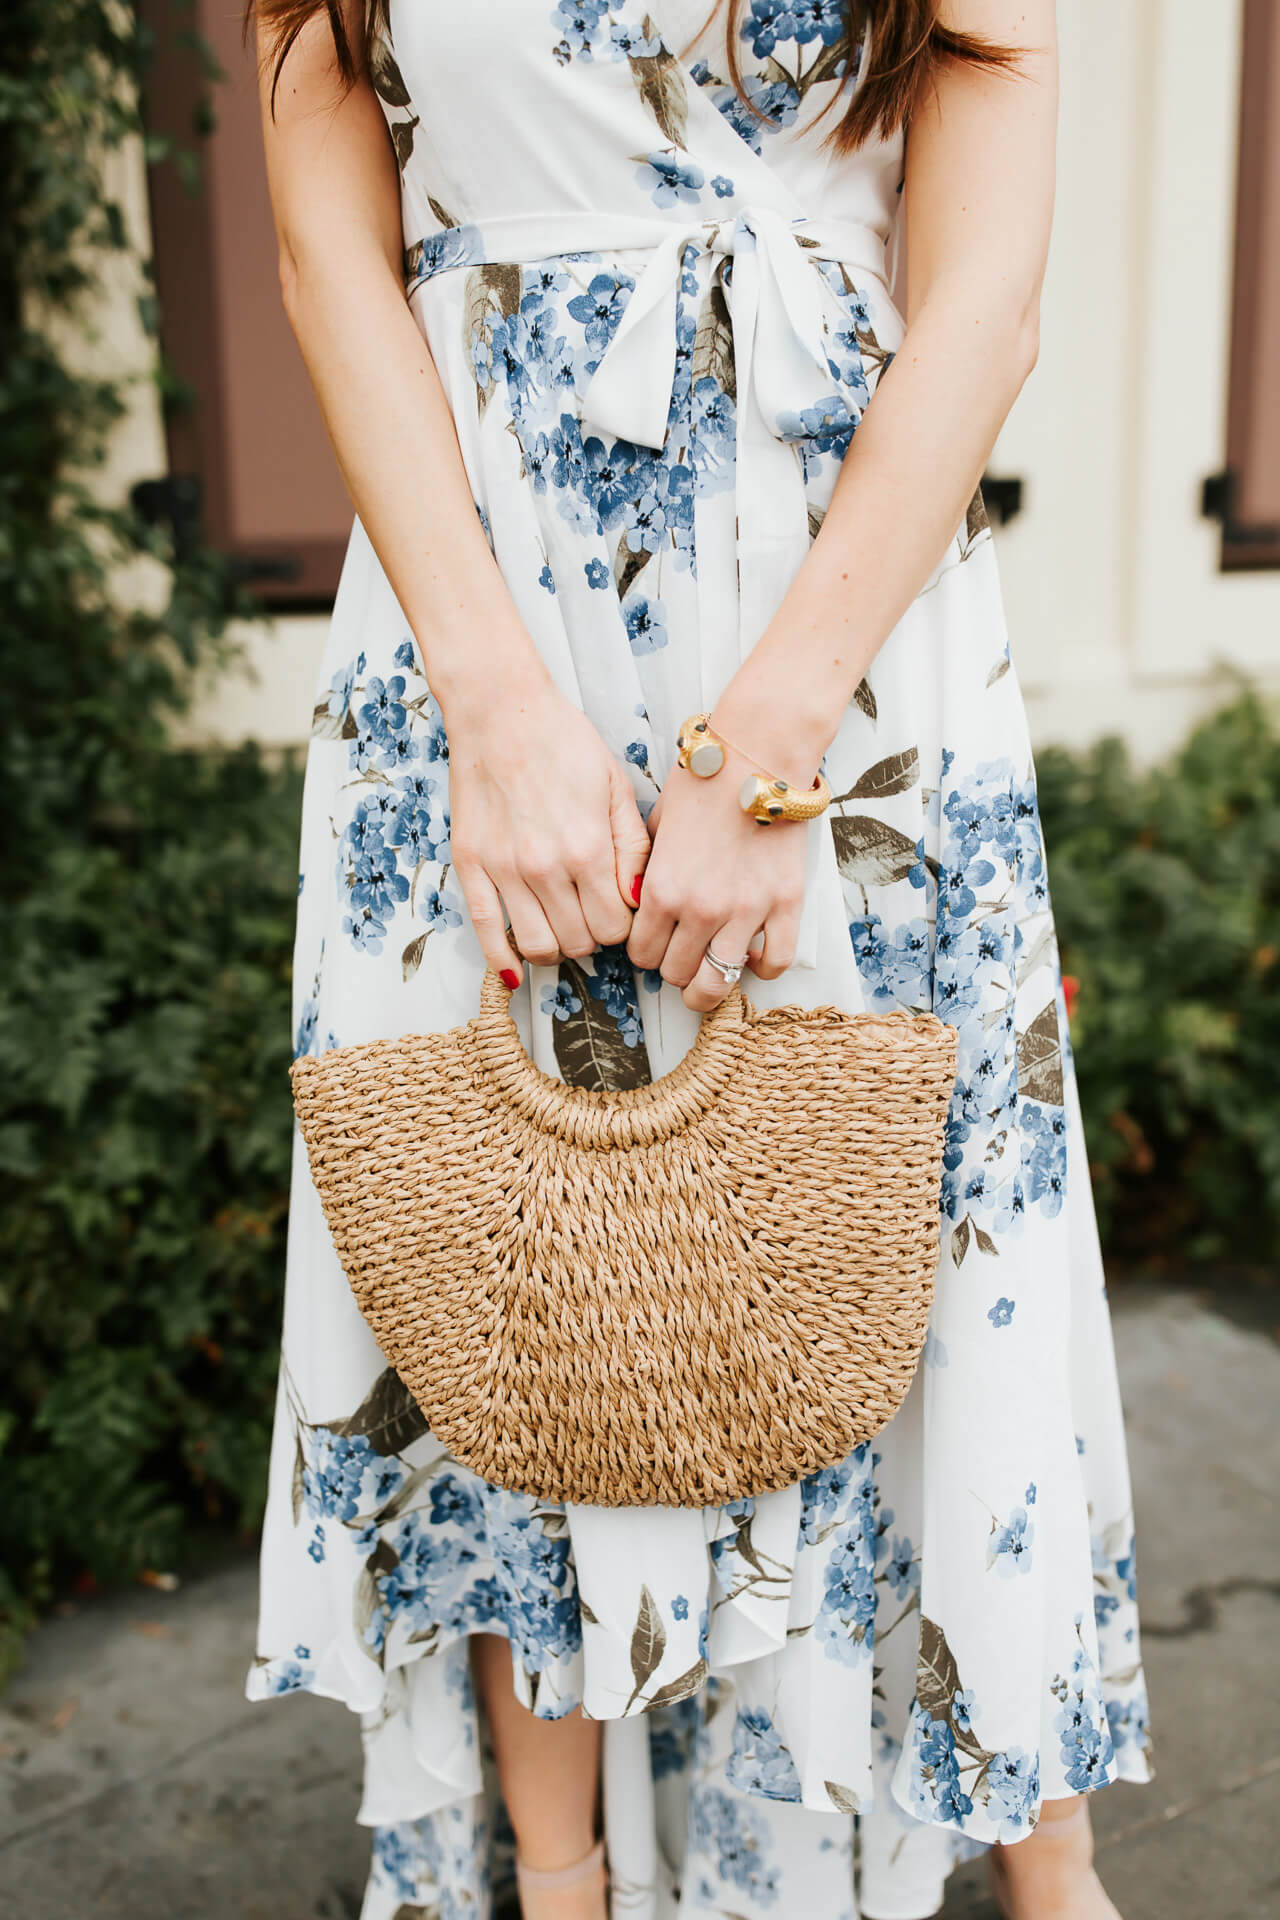 this is the must-have bag for spring 2018! A cute woven bag with a ring handle would be so versatile!